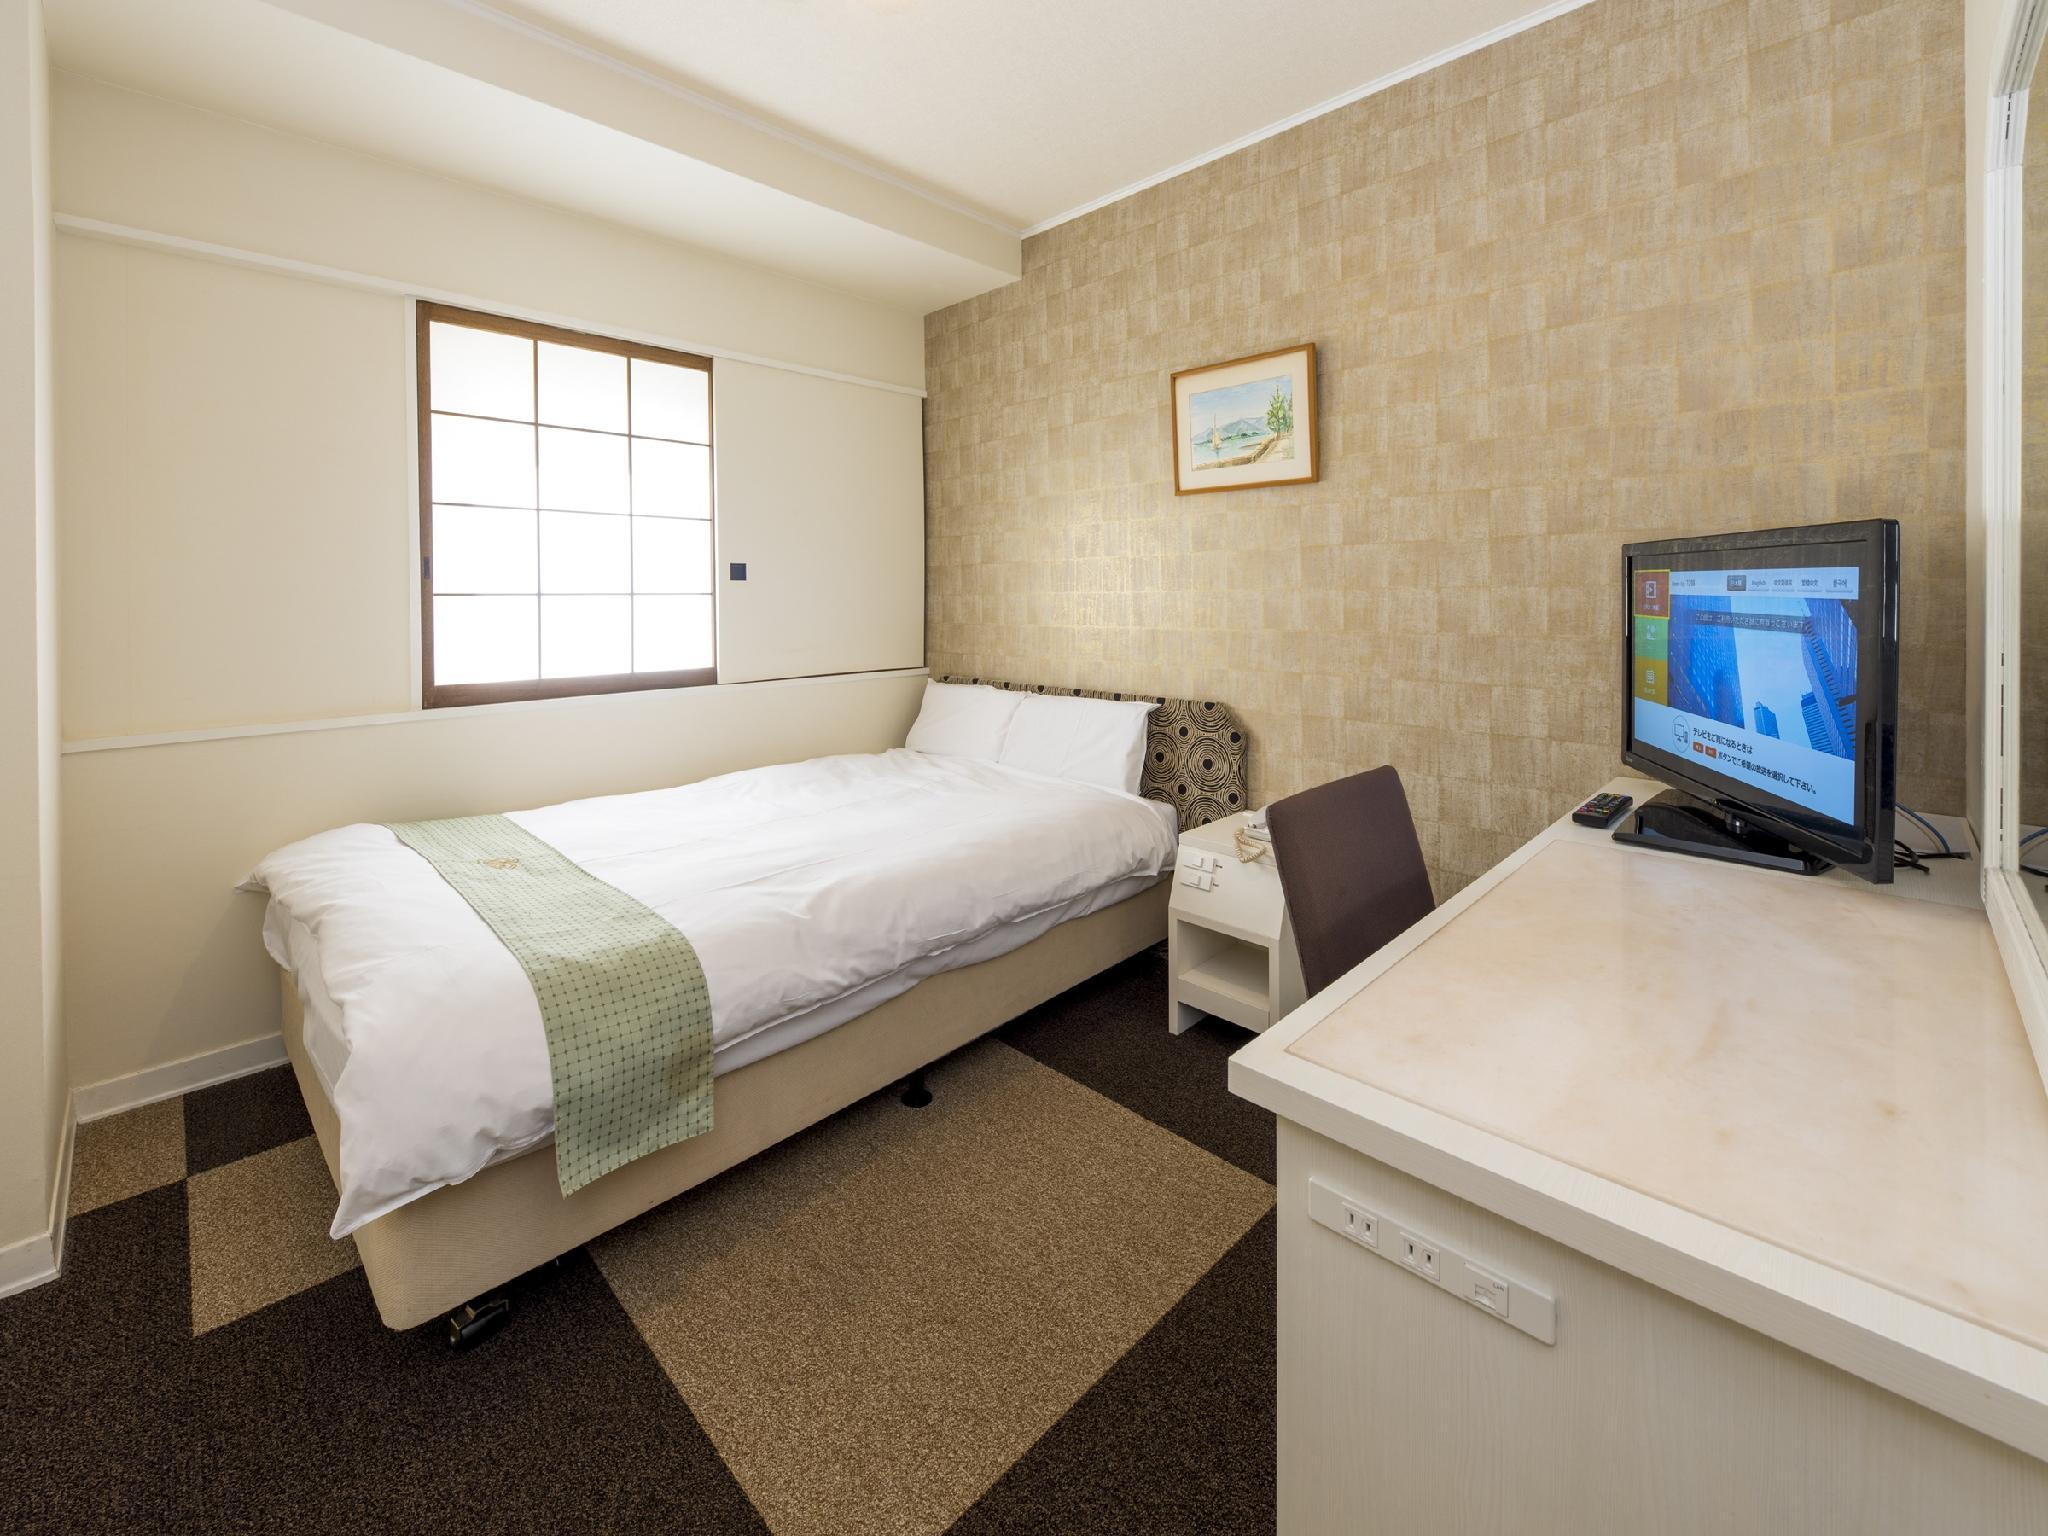 Double Room with Small Doube bed - Smoking